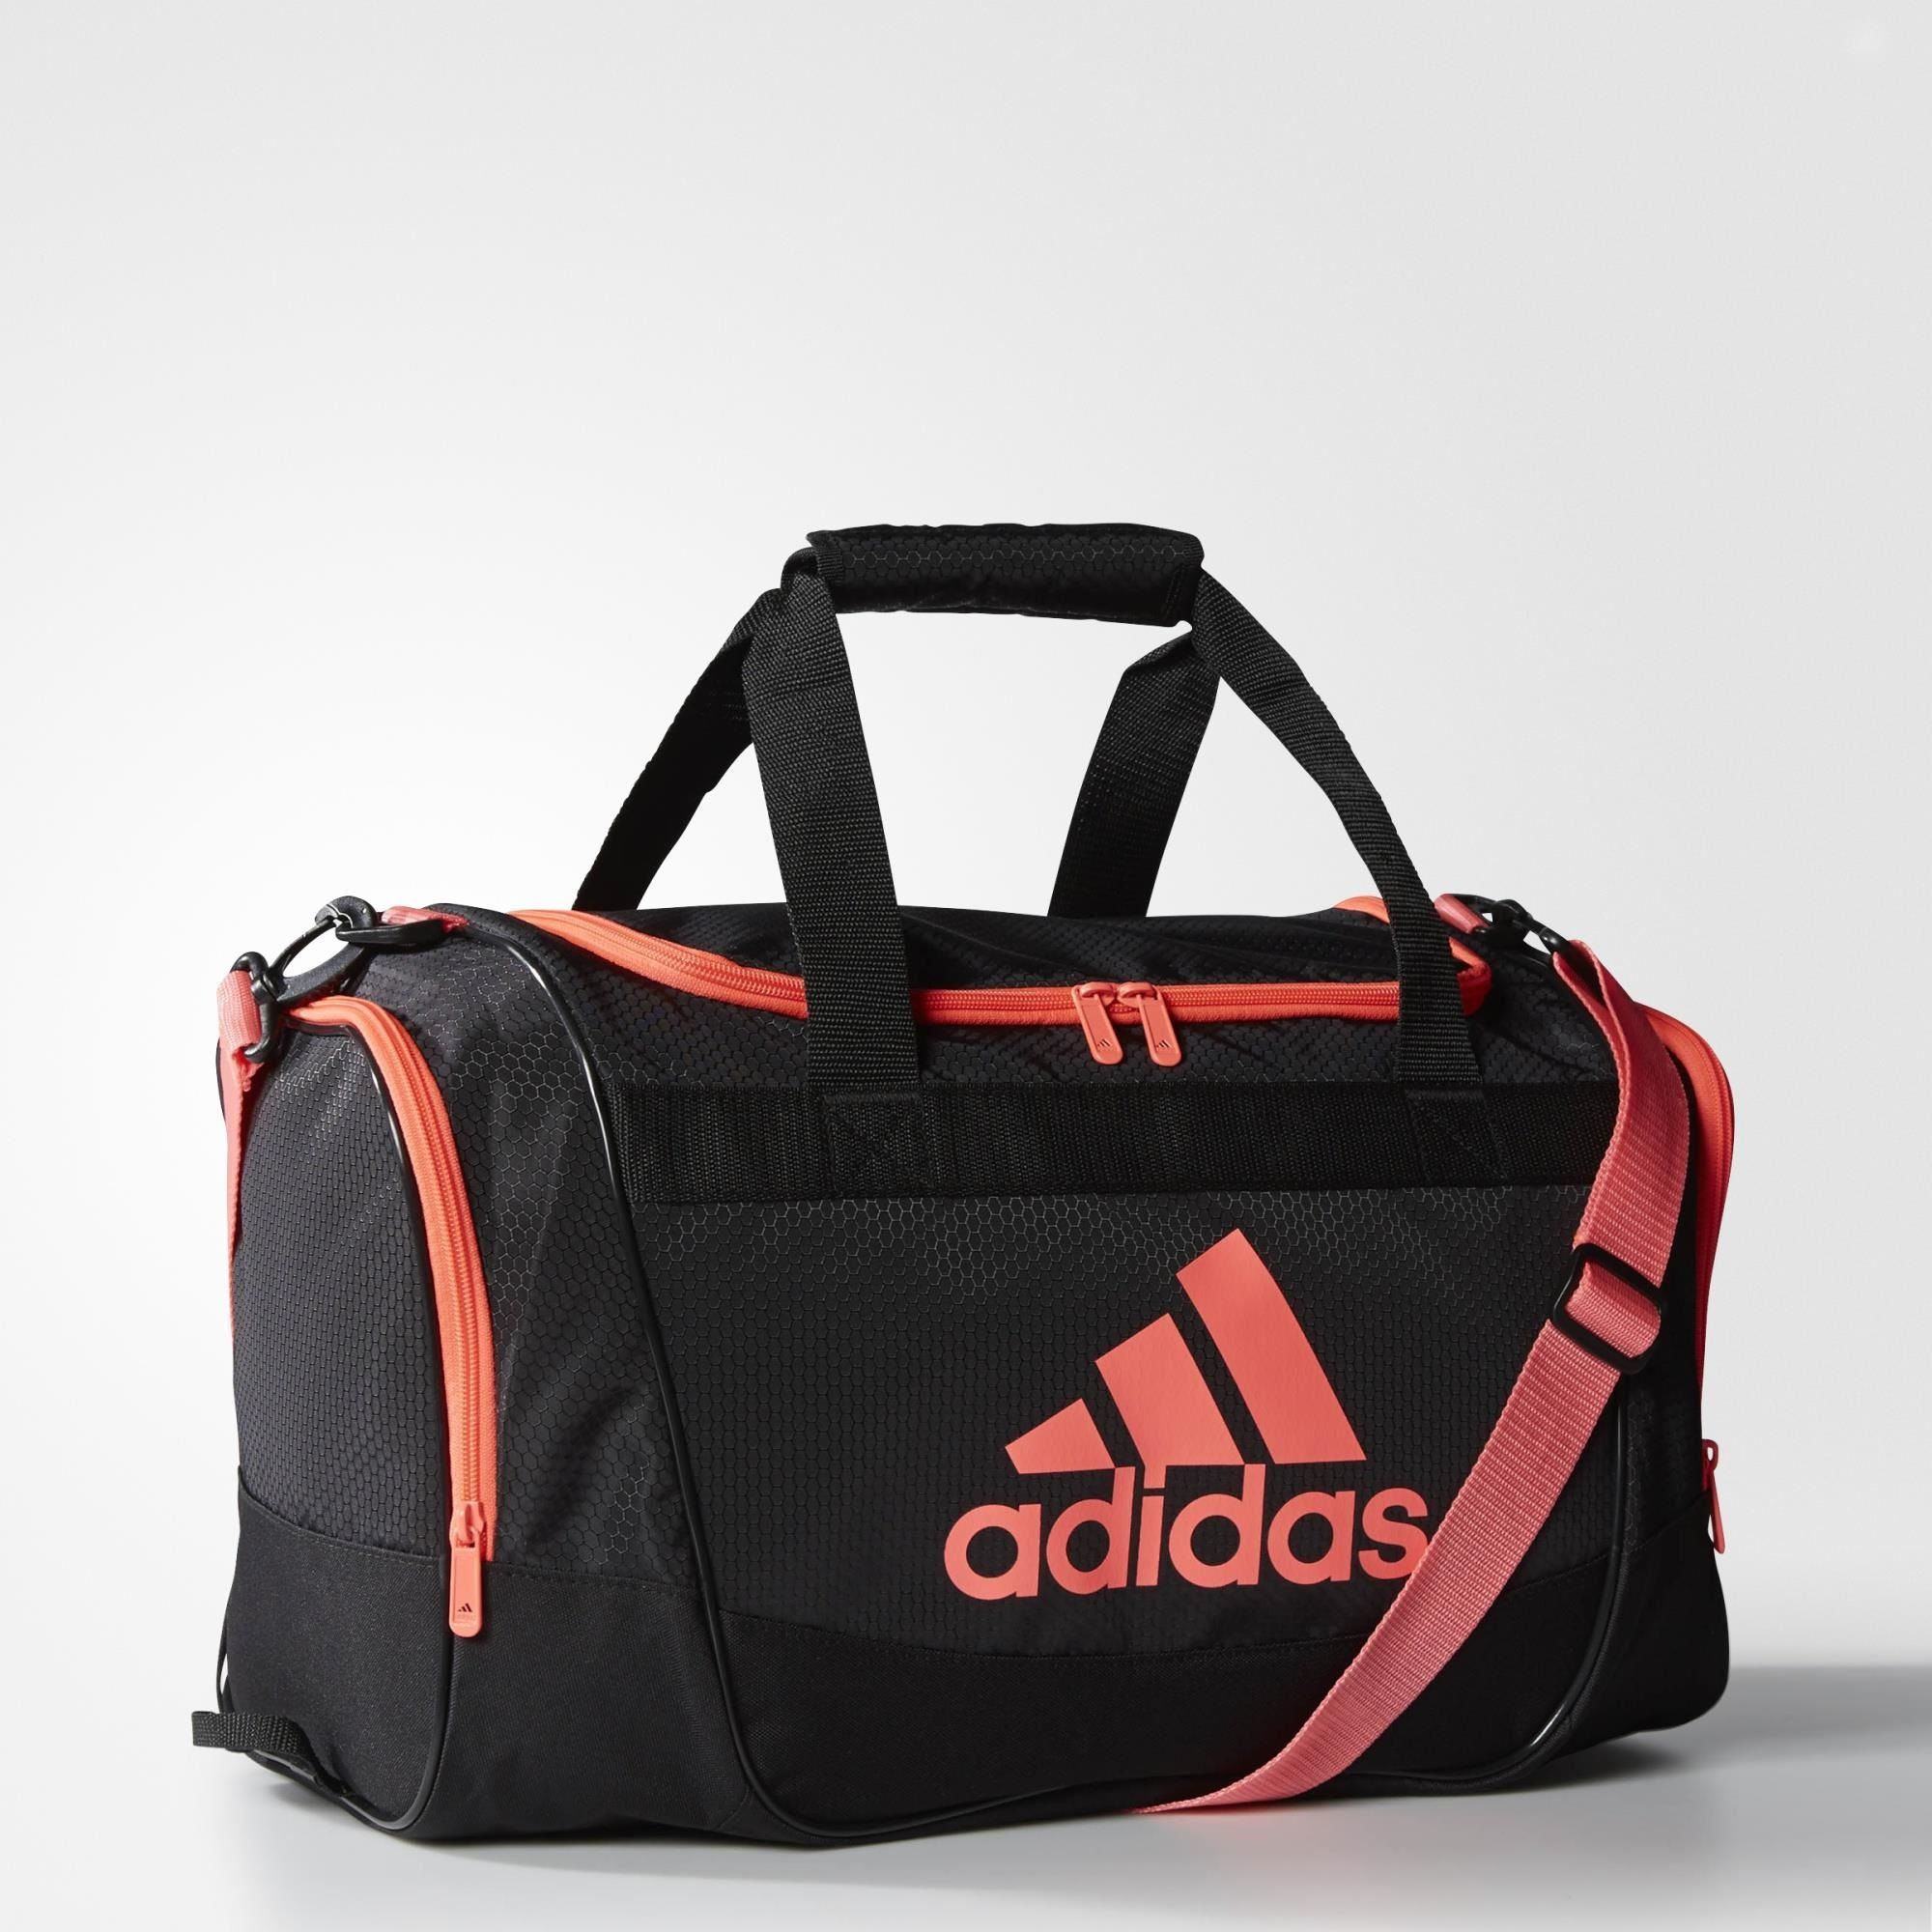 adidas team speed duffel small 40 â liked on polyvore